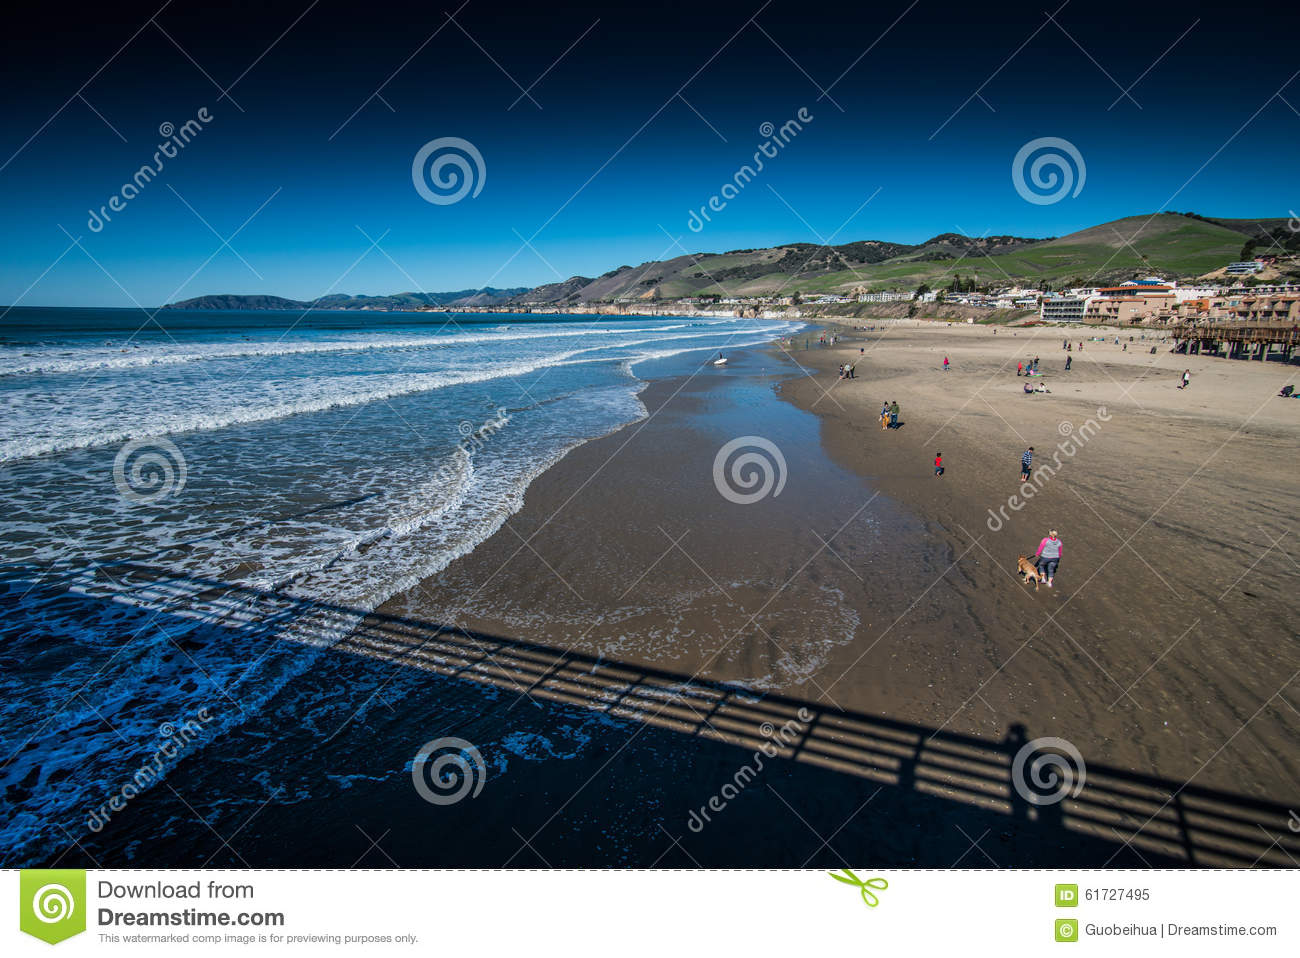 San luis obispo california dating areas